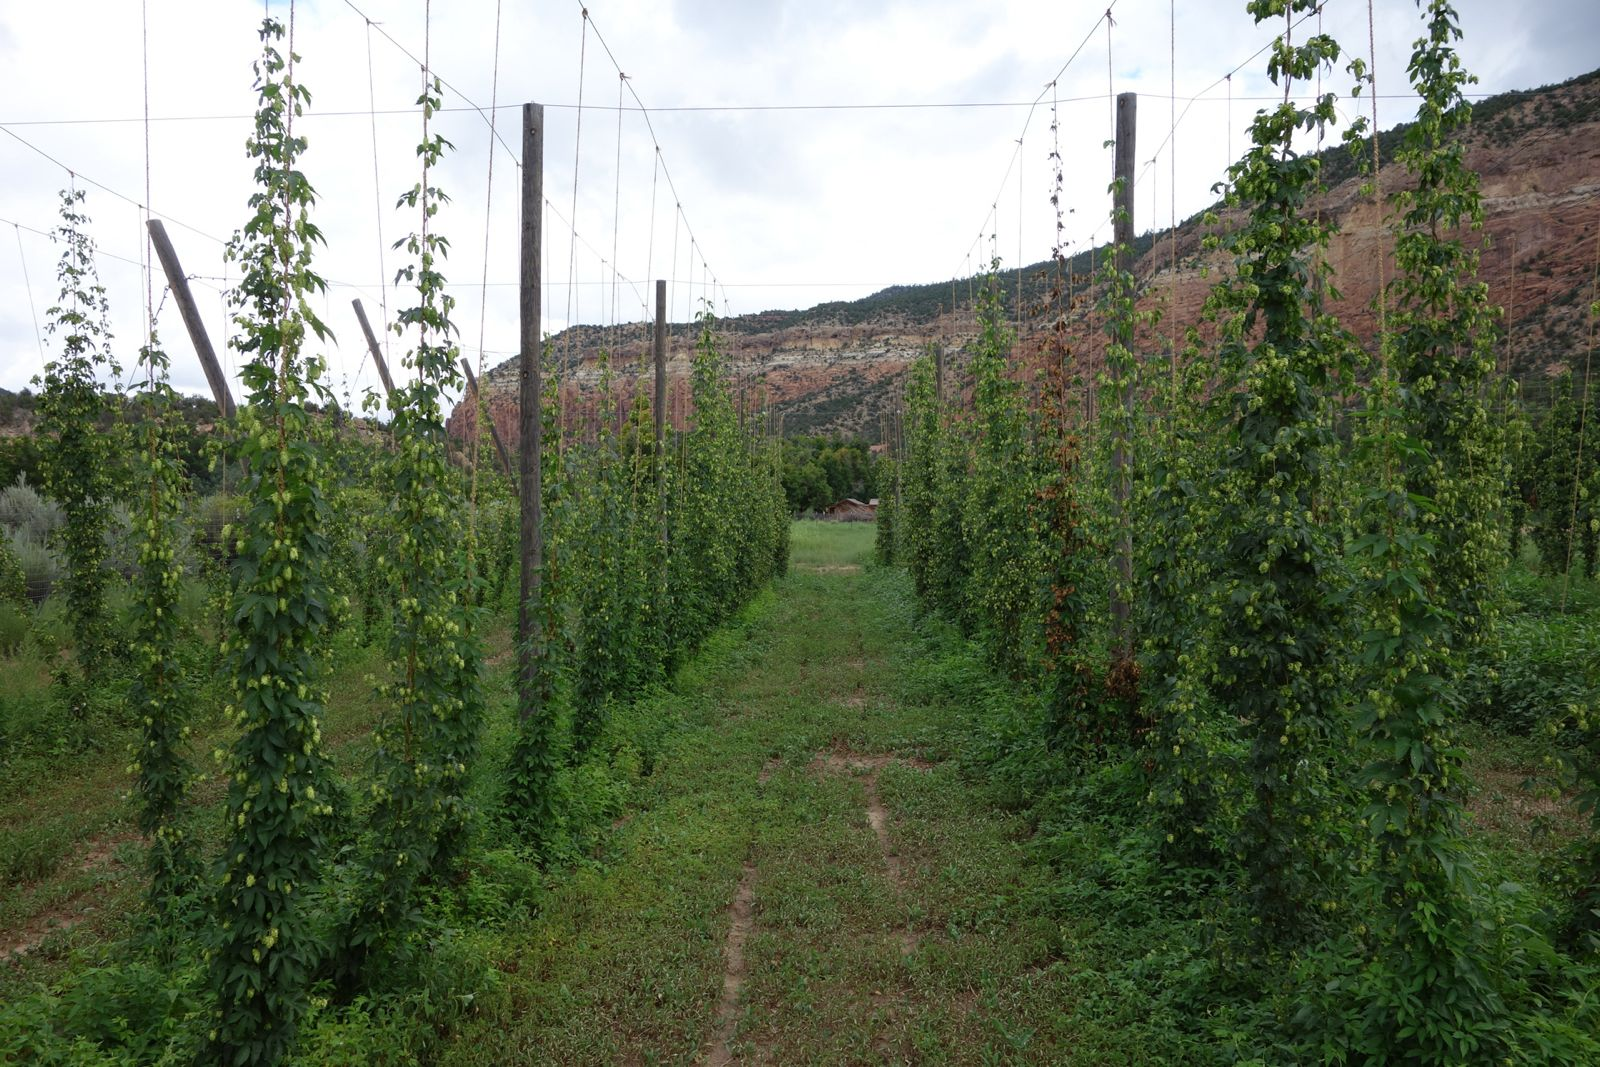 Rows of hops